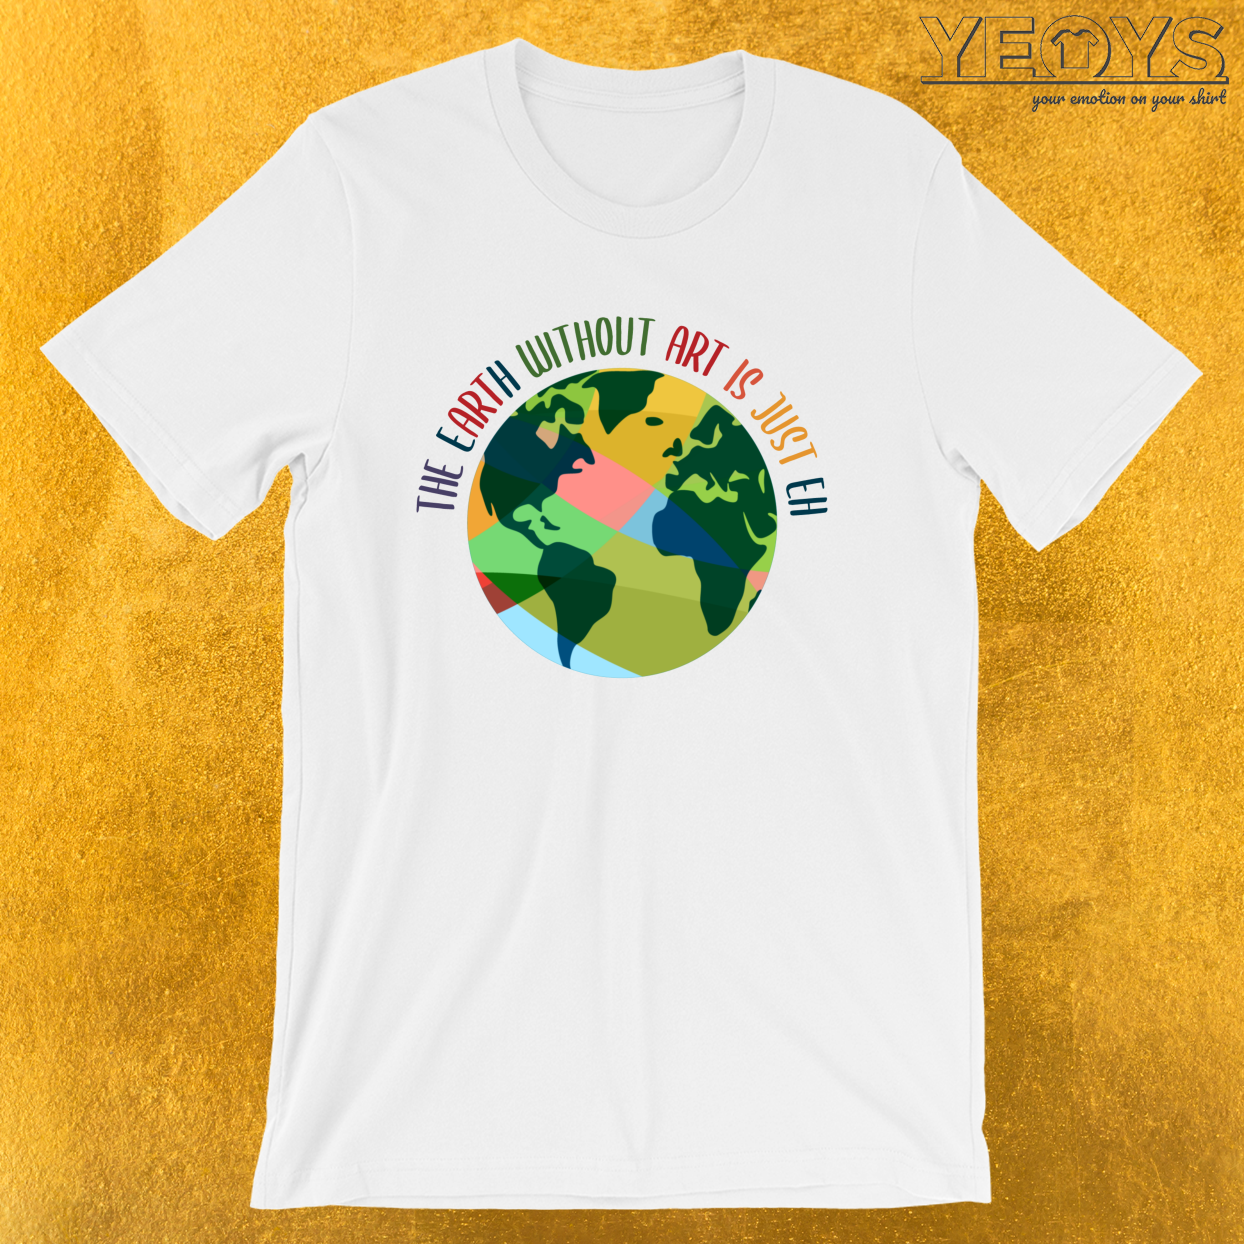 The Earth Without Art Is Just Eh – Funny Artist Pun Tee